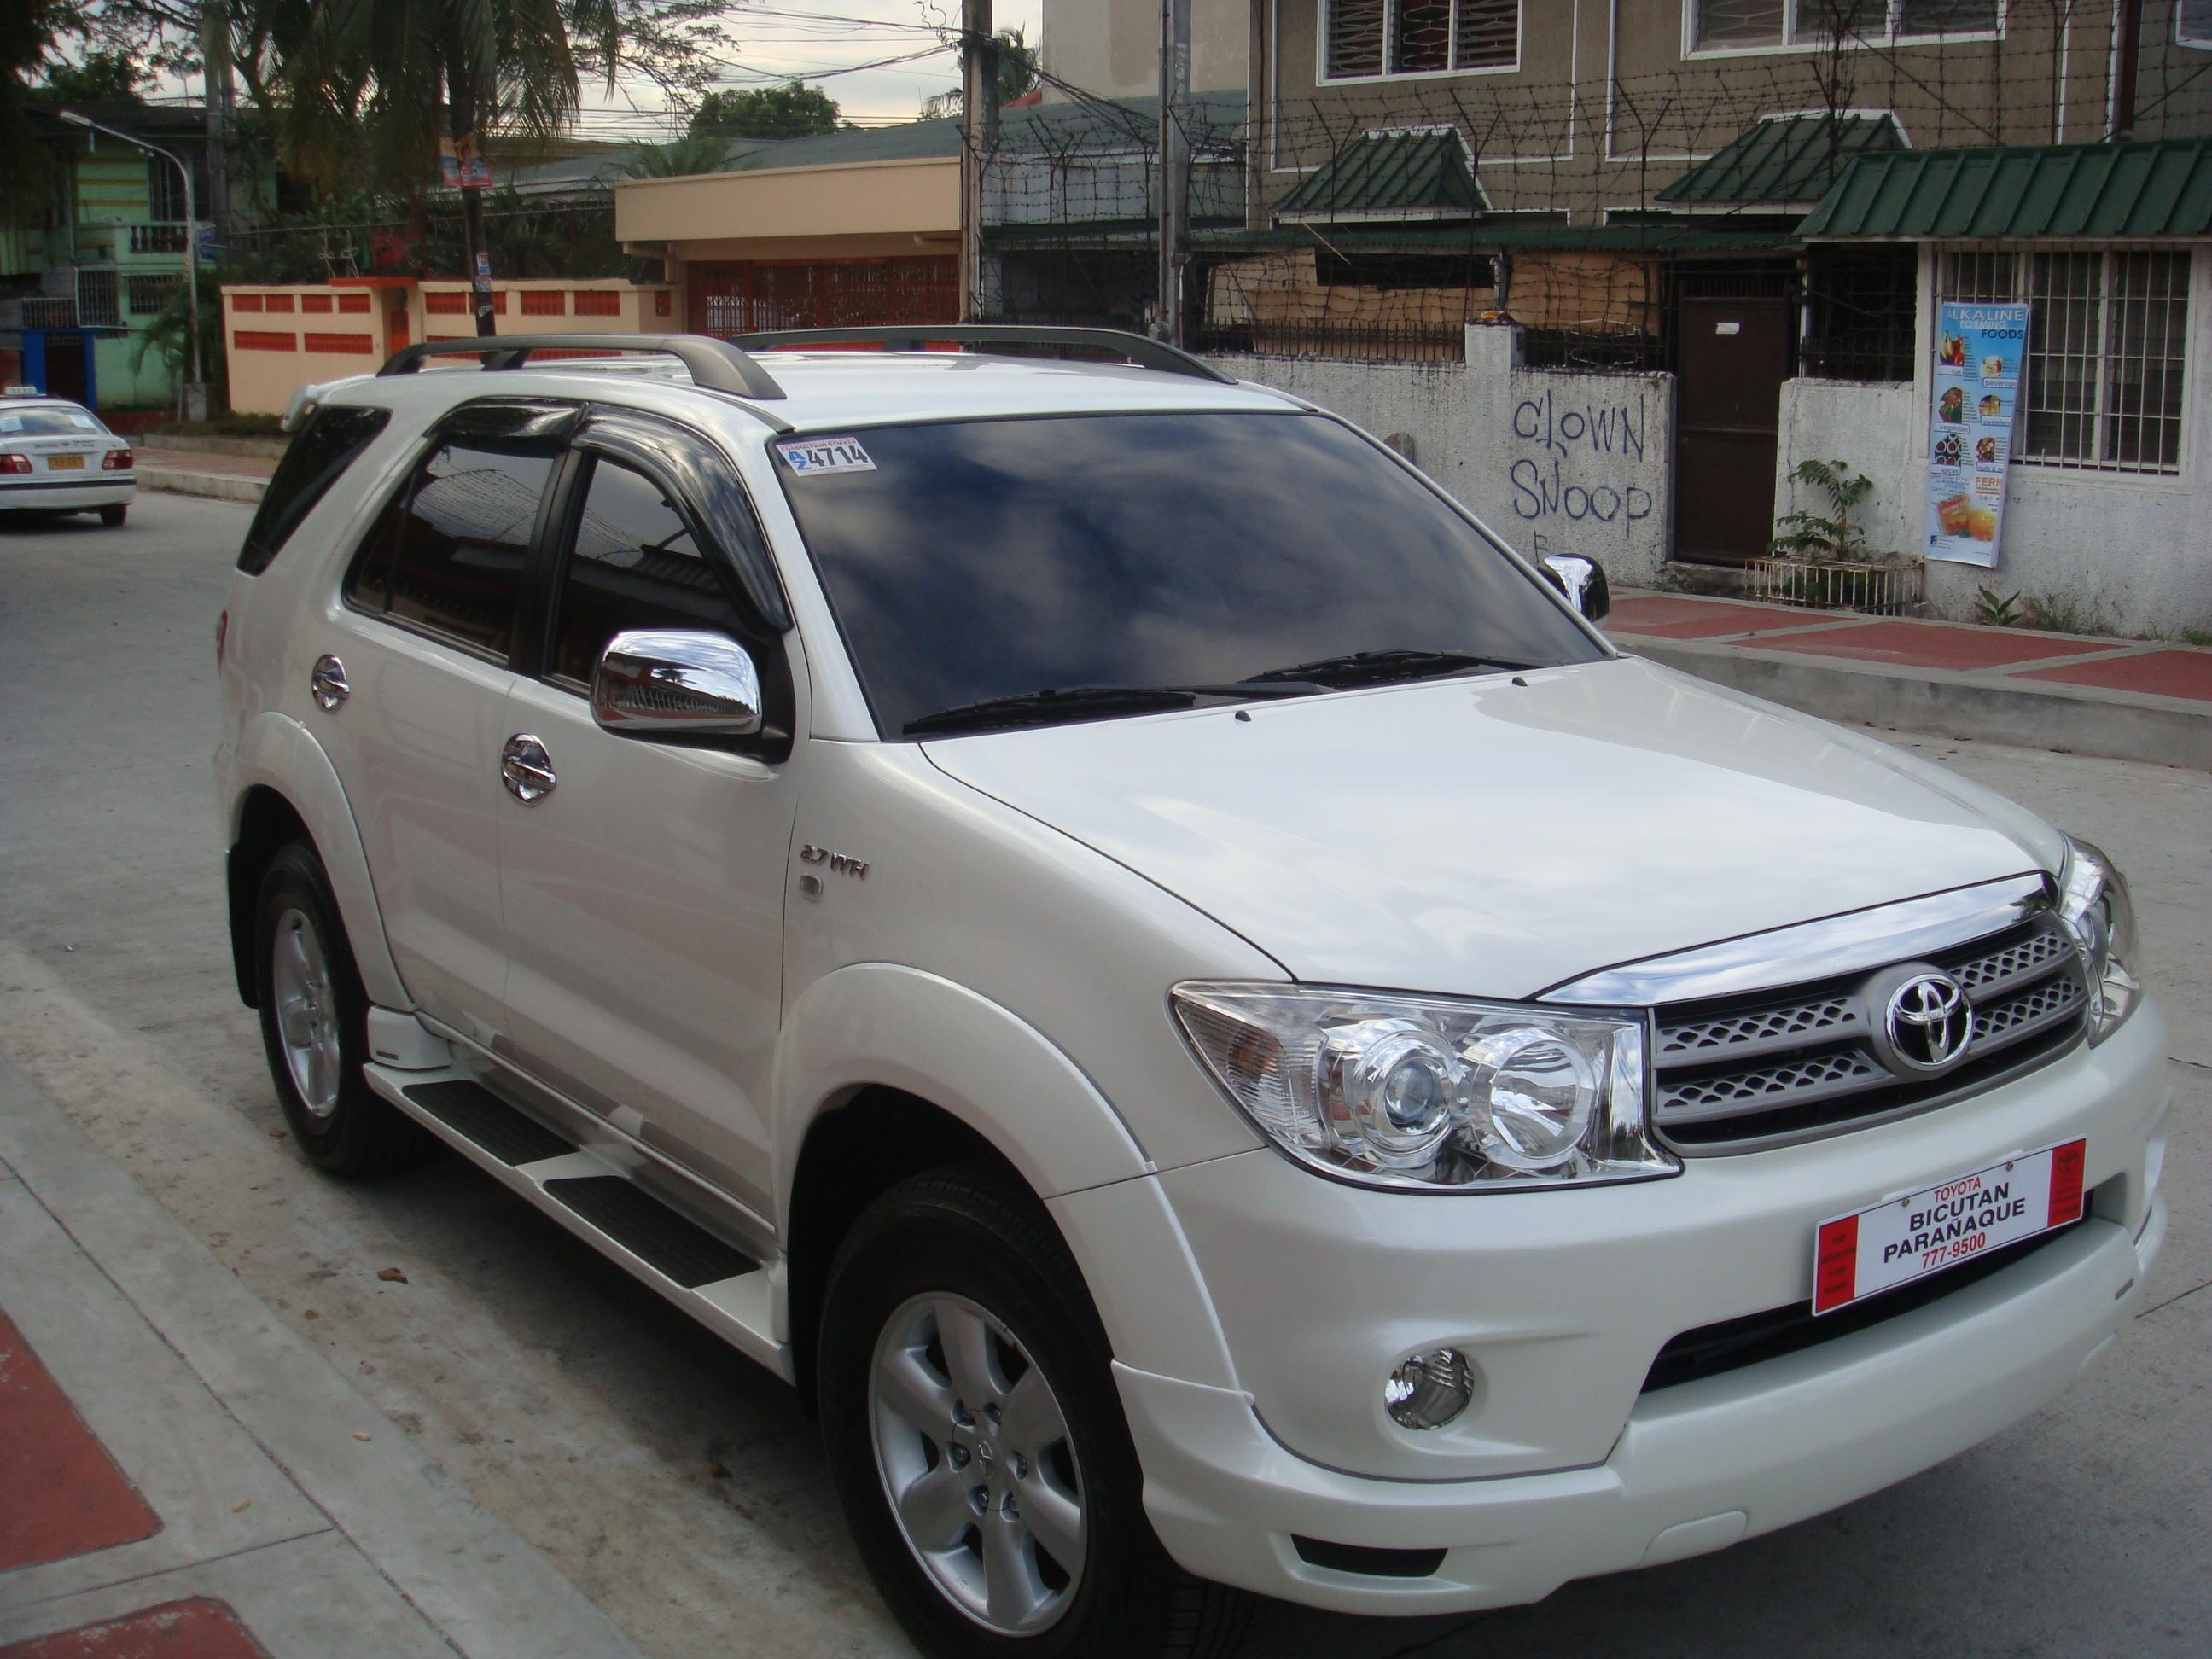 Markandal 2010 Toyota Fortuner Specs Photos Modification Info At Cardomain